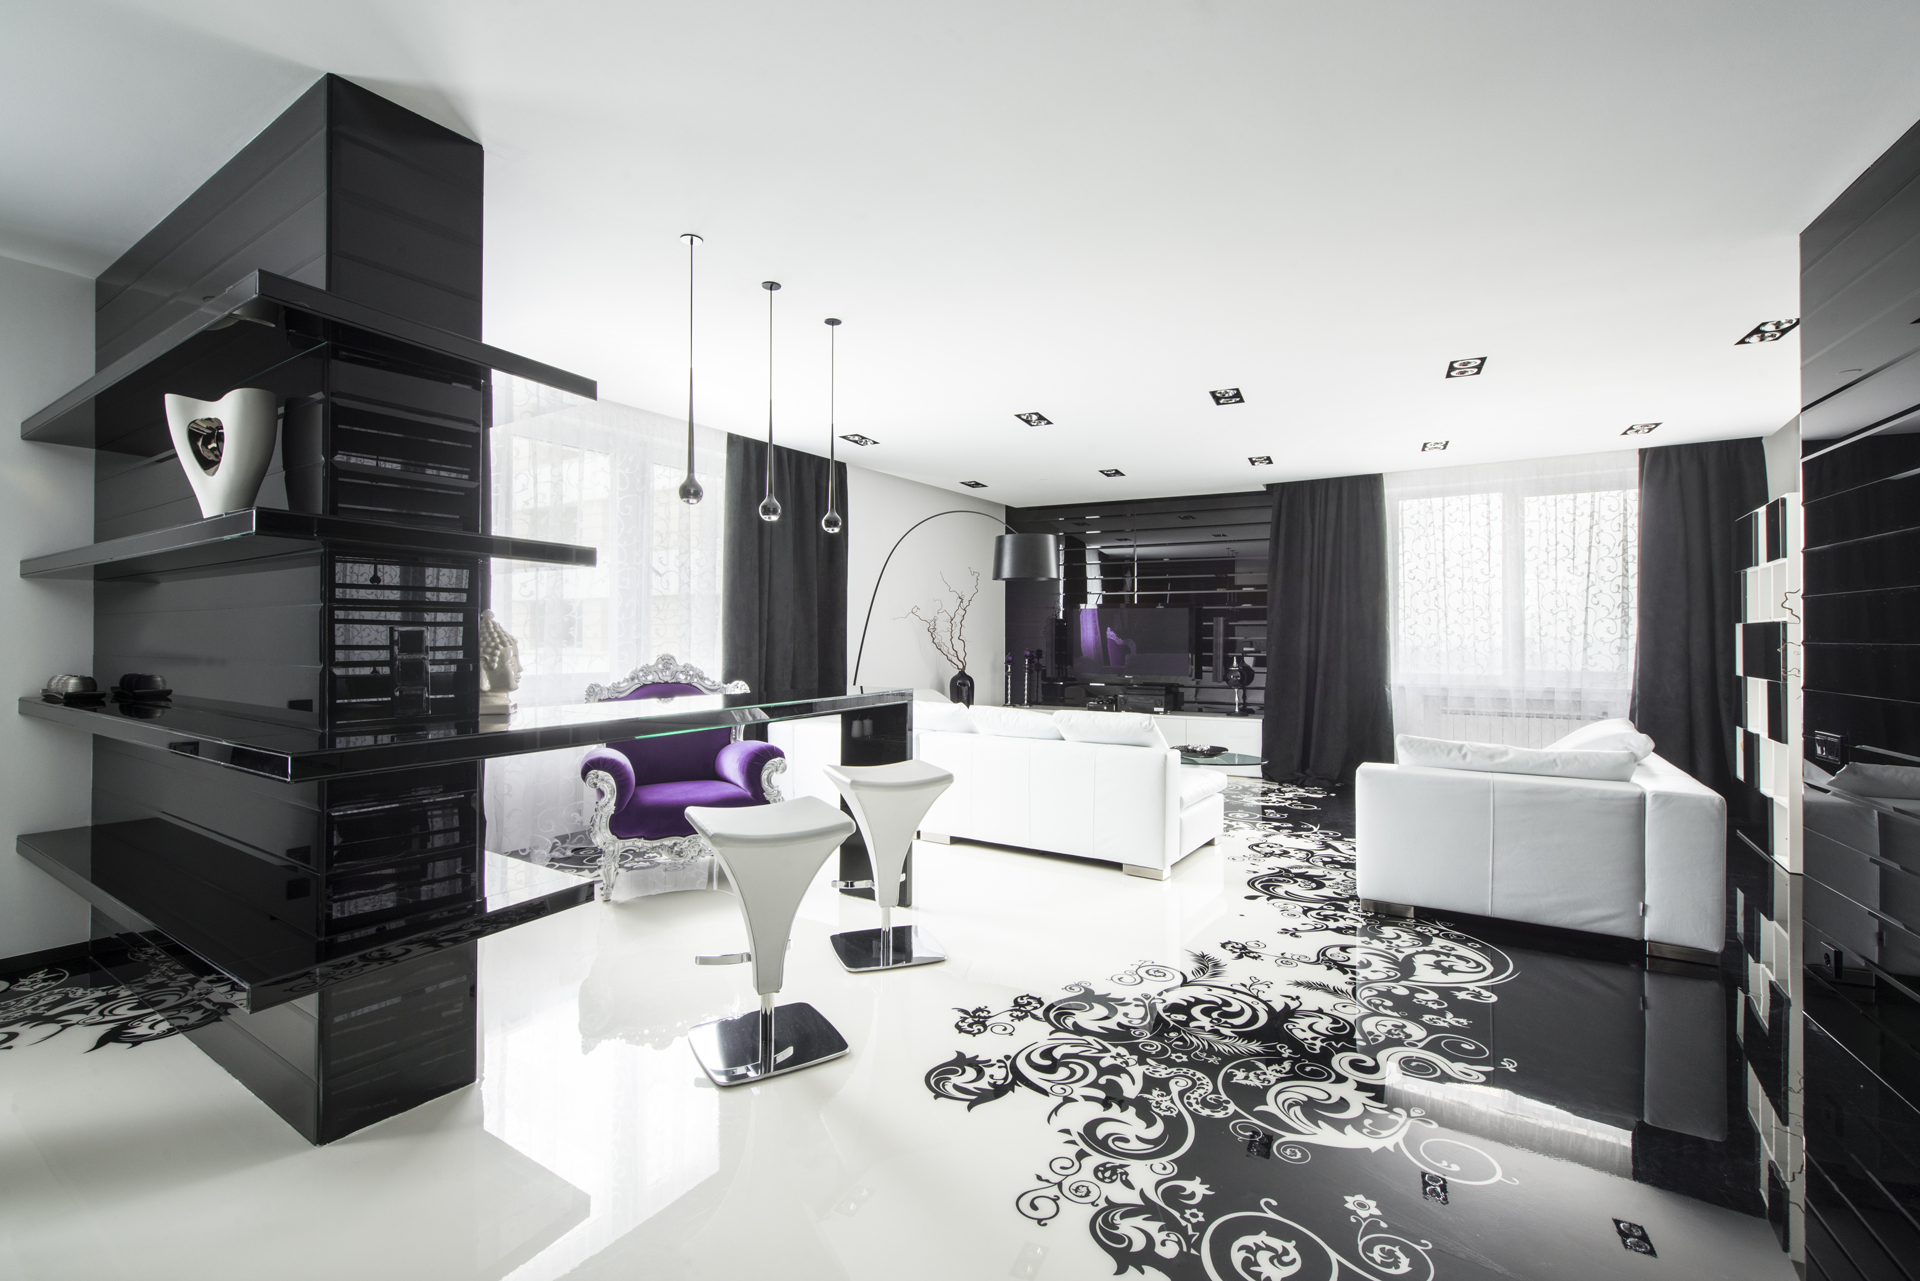 Black and white graphic decor Bedrooms decorated in black and white